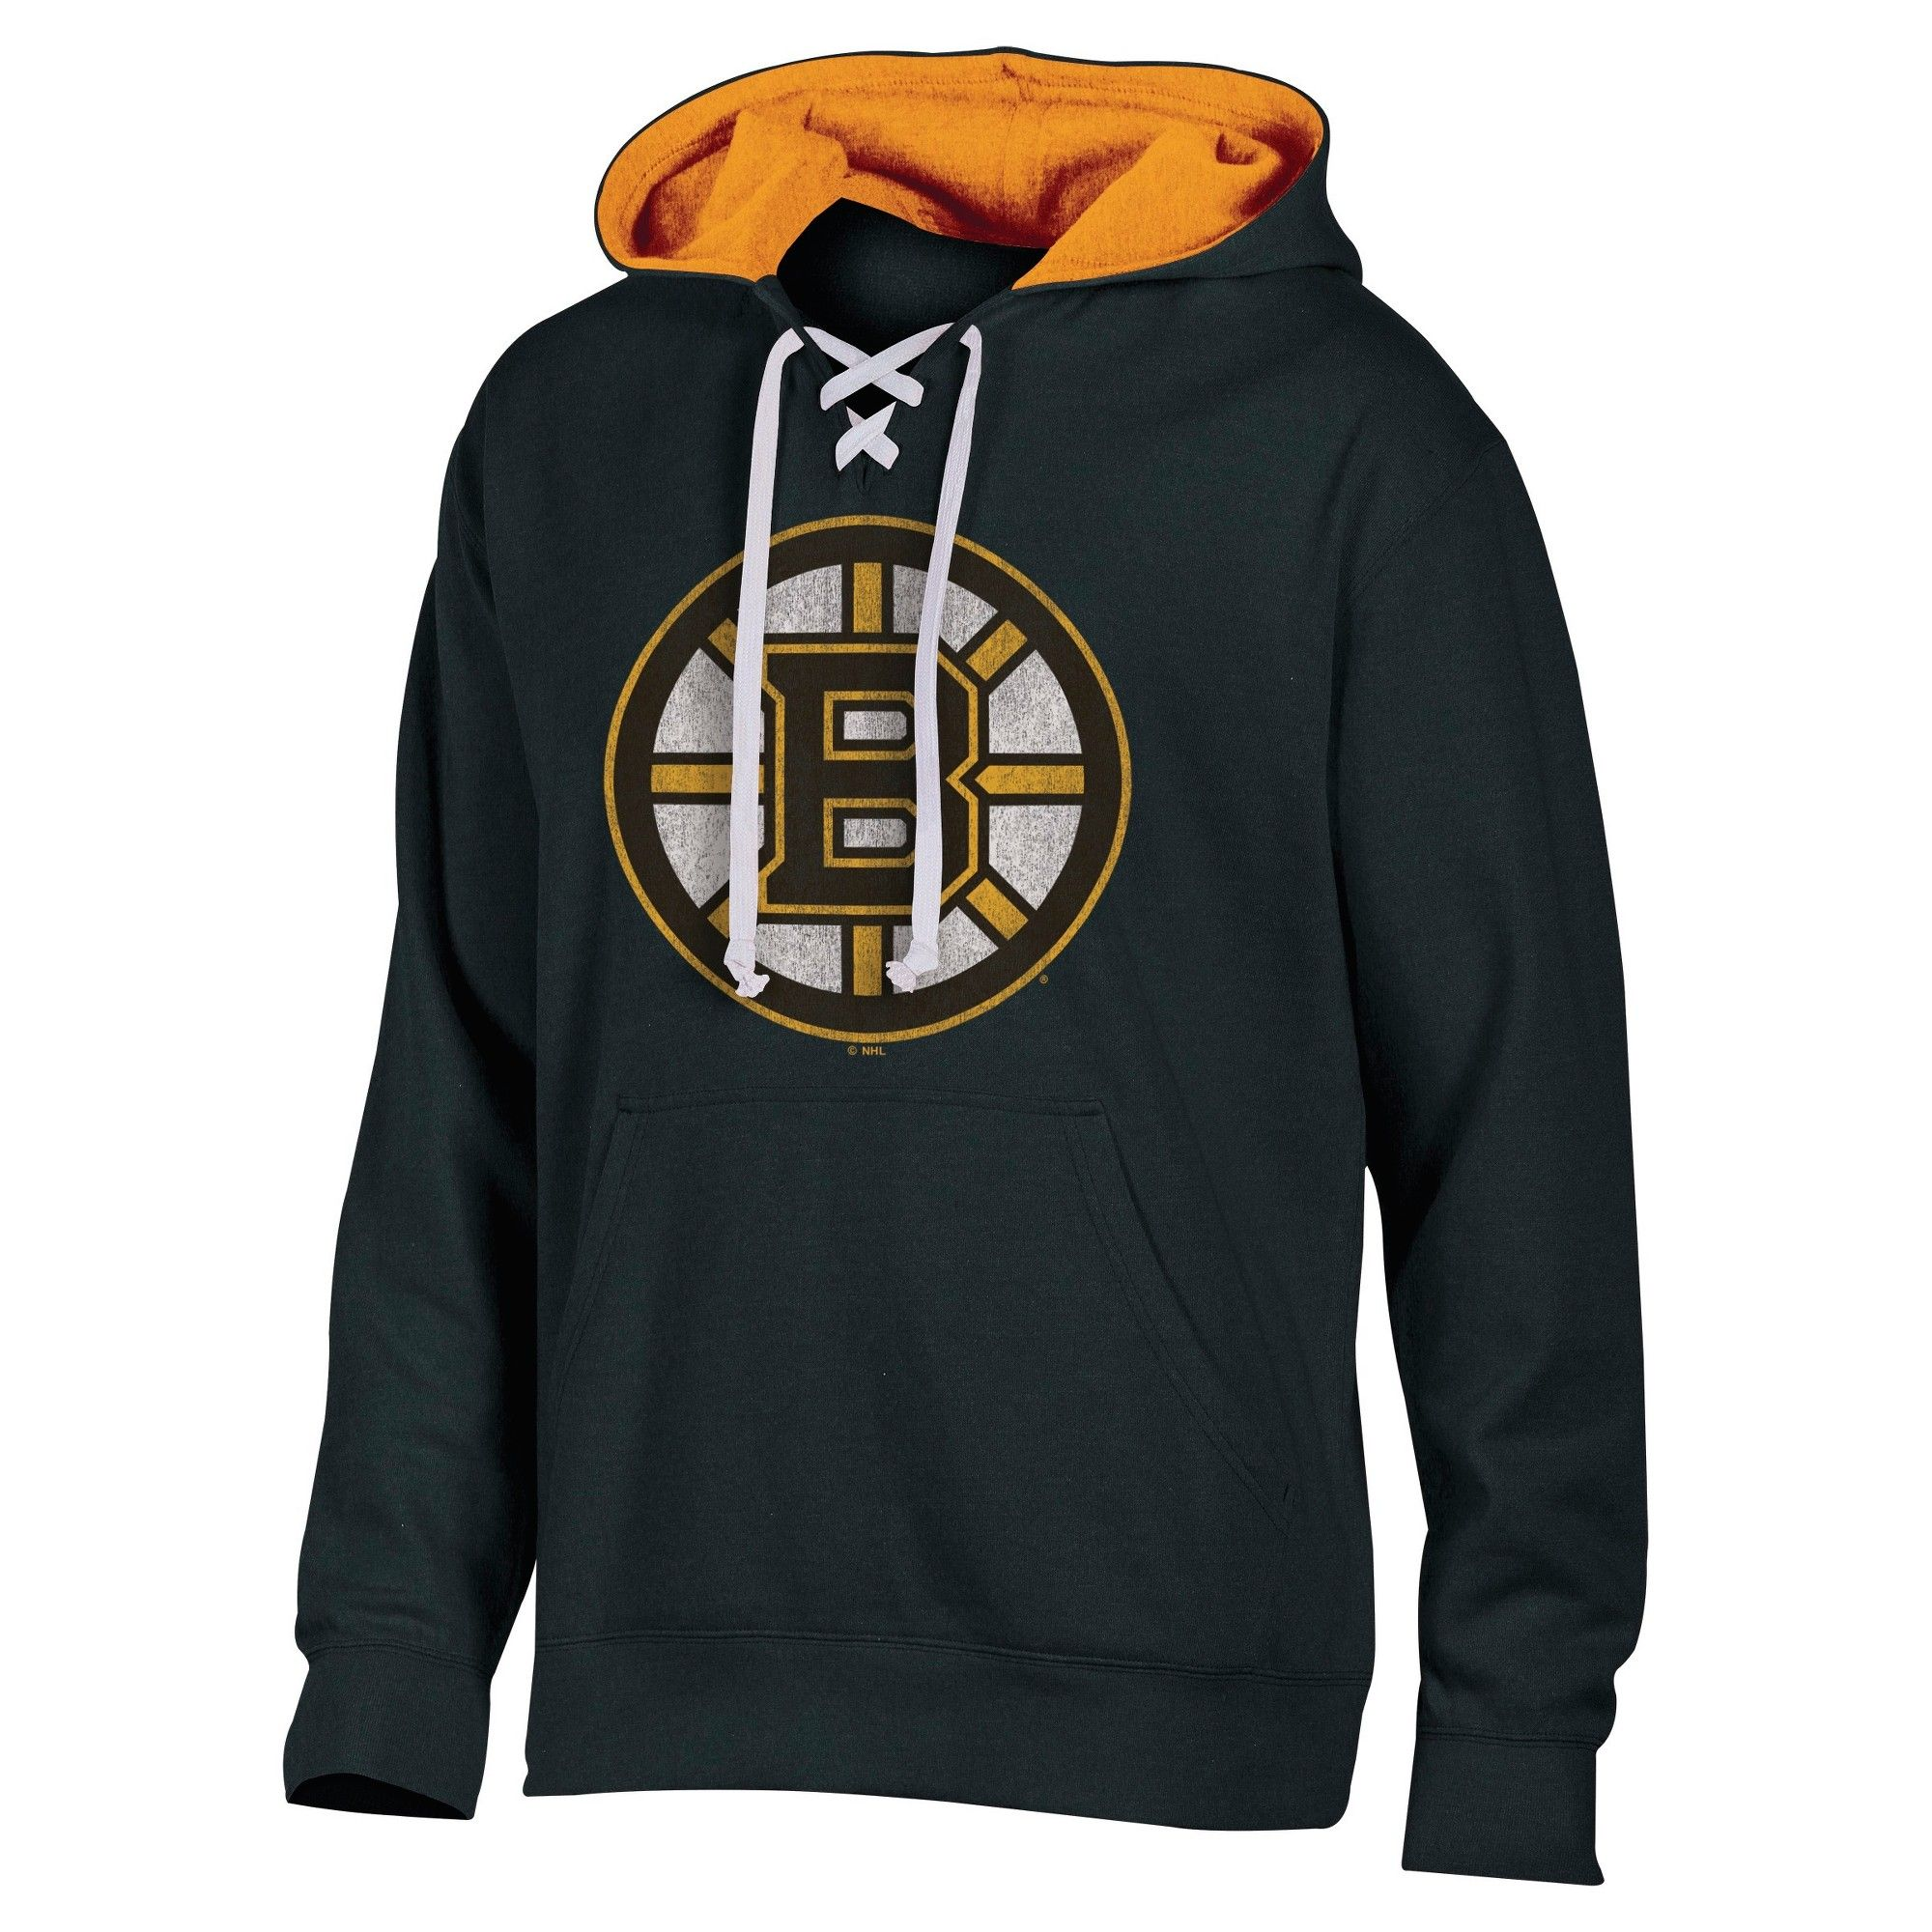 online store 02281 a8450 Boston Bruins Men's Lace-Up Pullover Hoodie Sweatshirt L ...